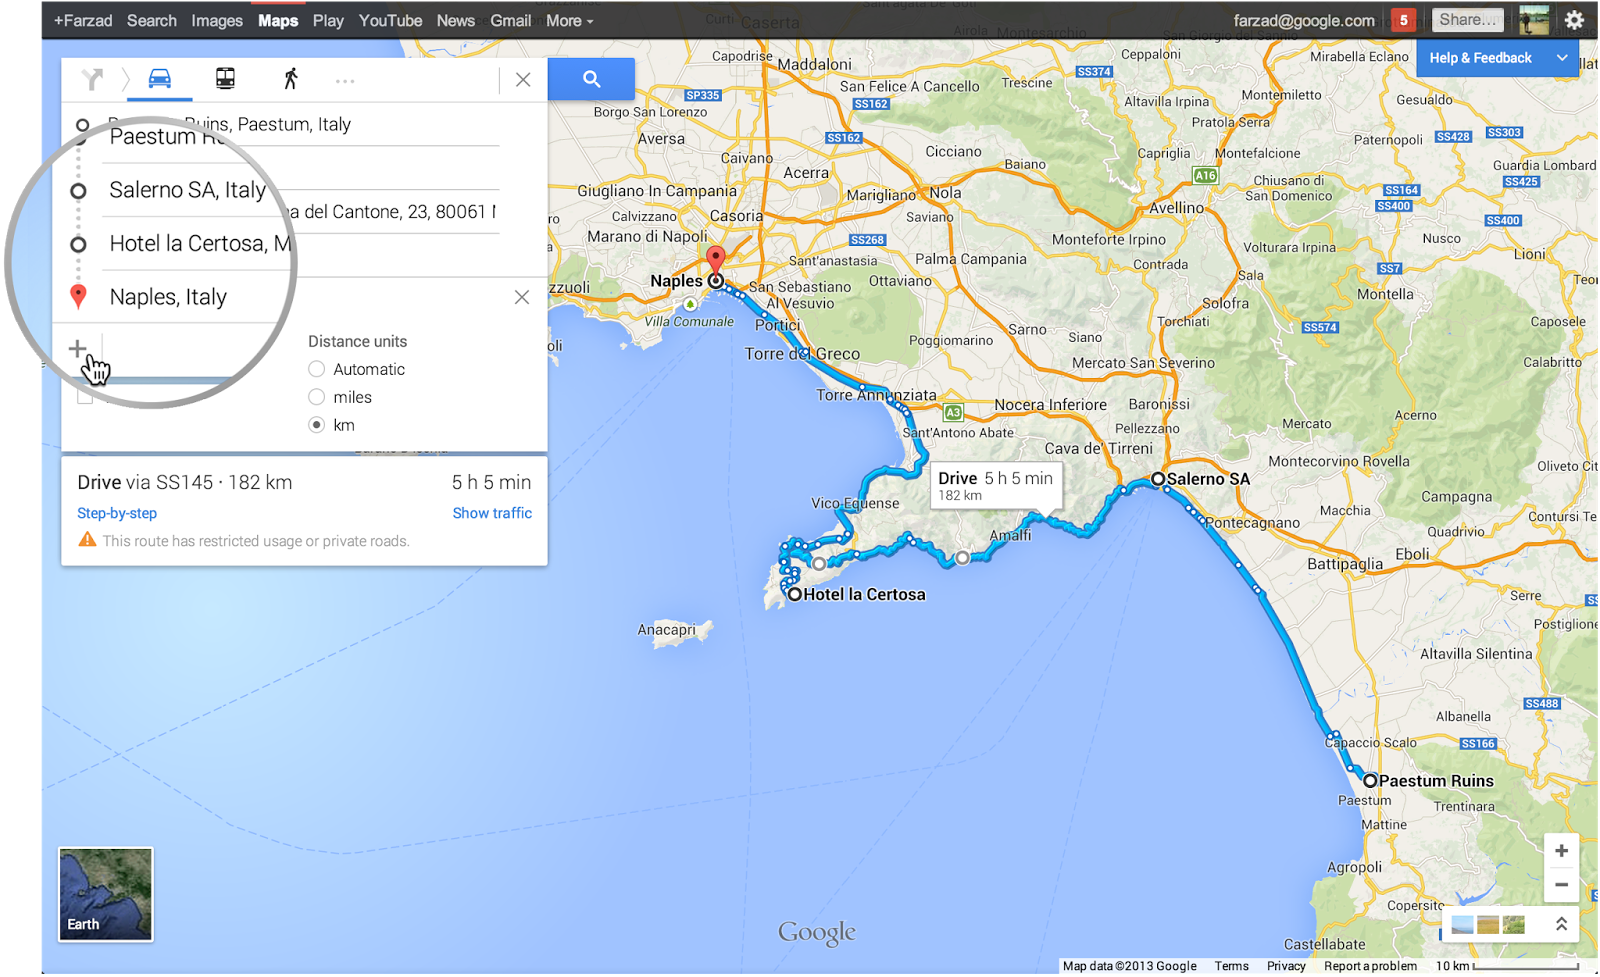 Get Directions For Multiple Destinations With The New Google Maps